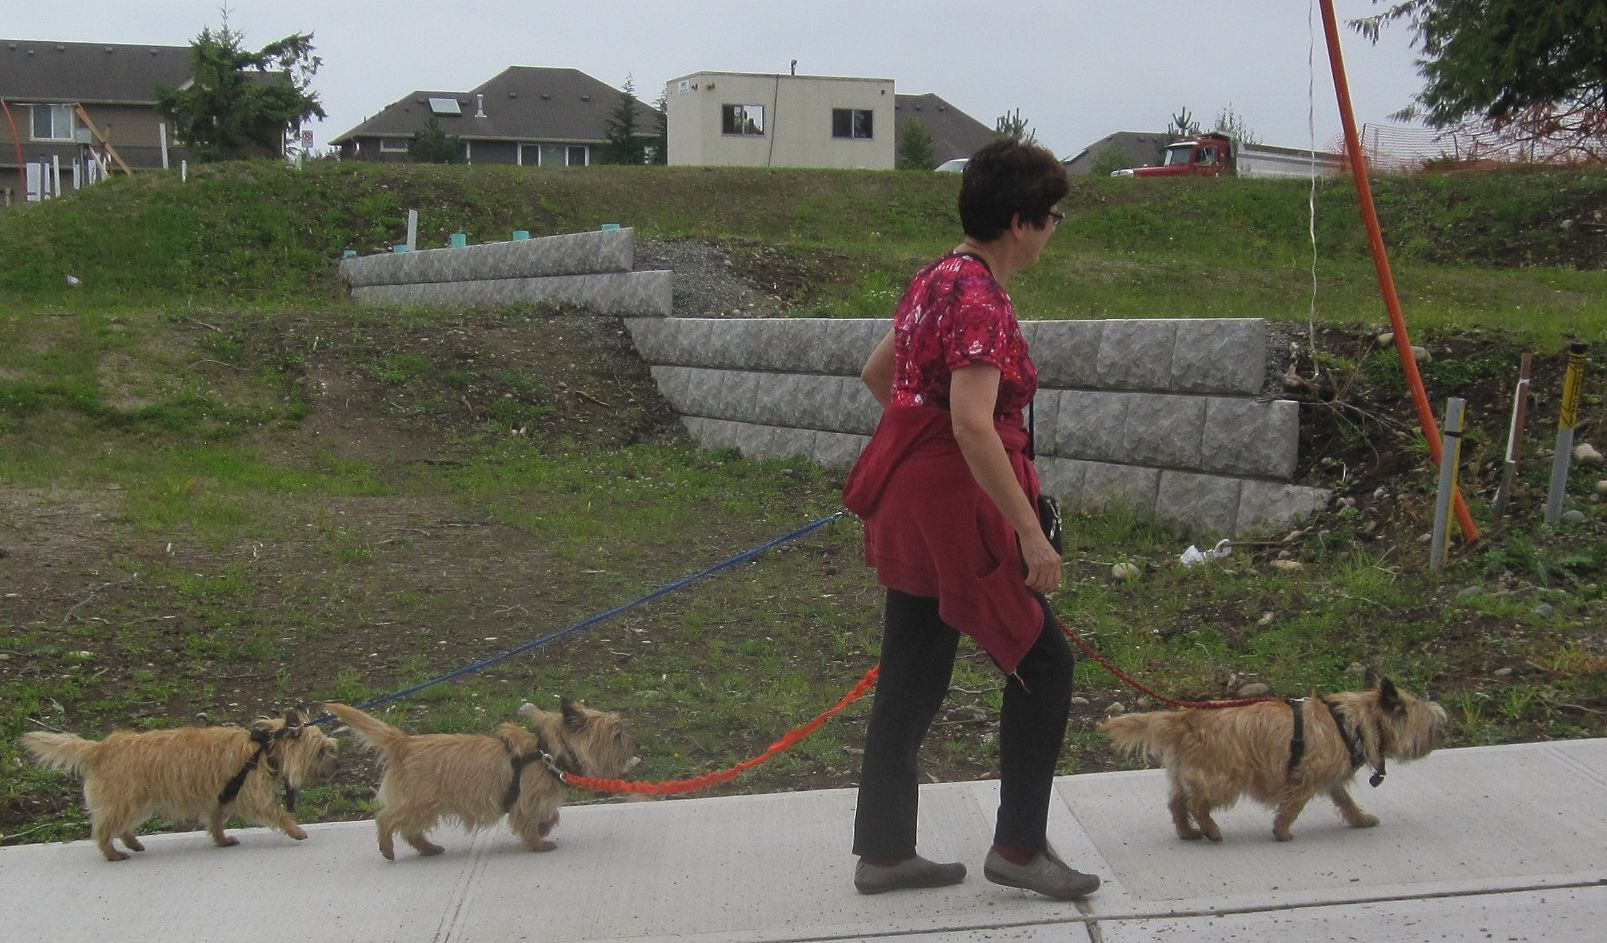 Mar_Walking_3_dogs_with_lots_of_space